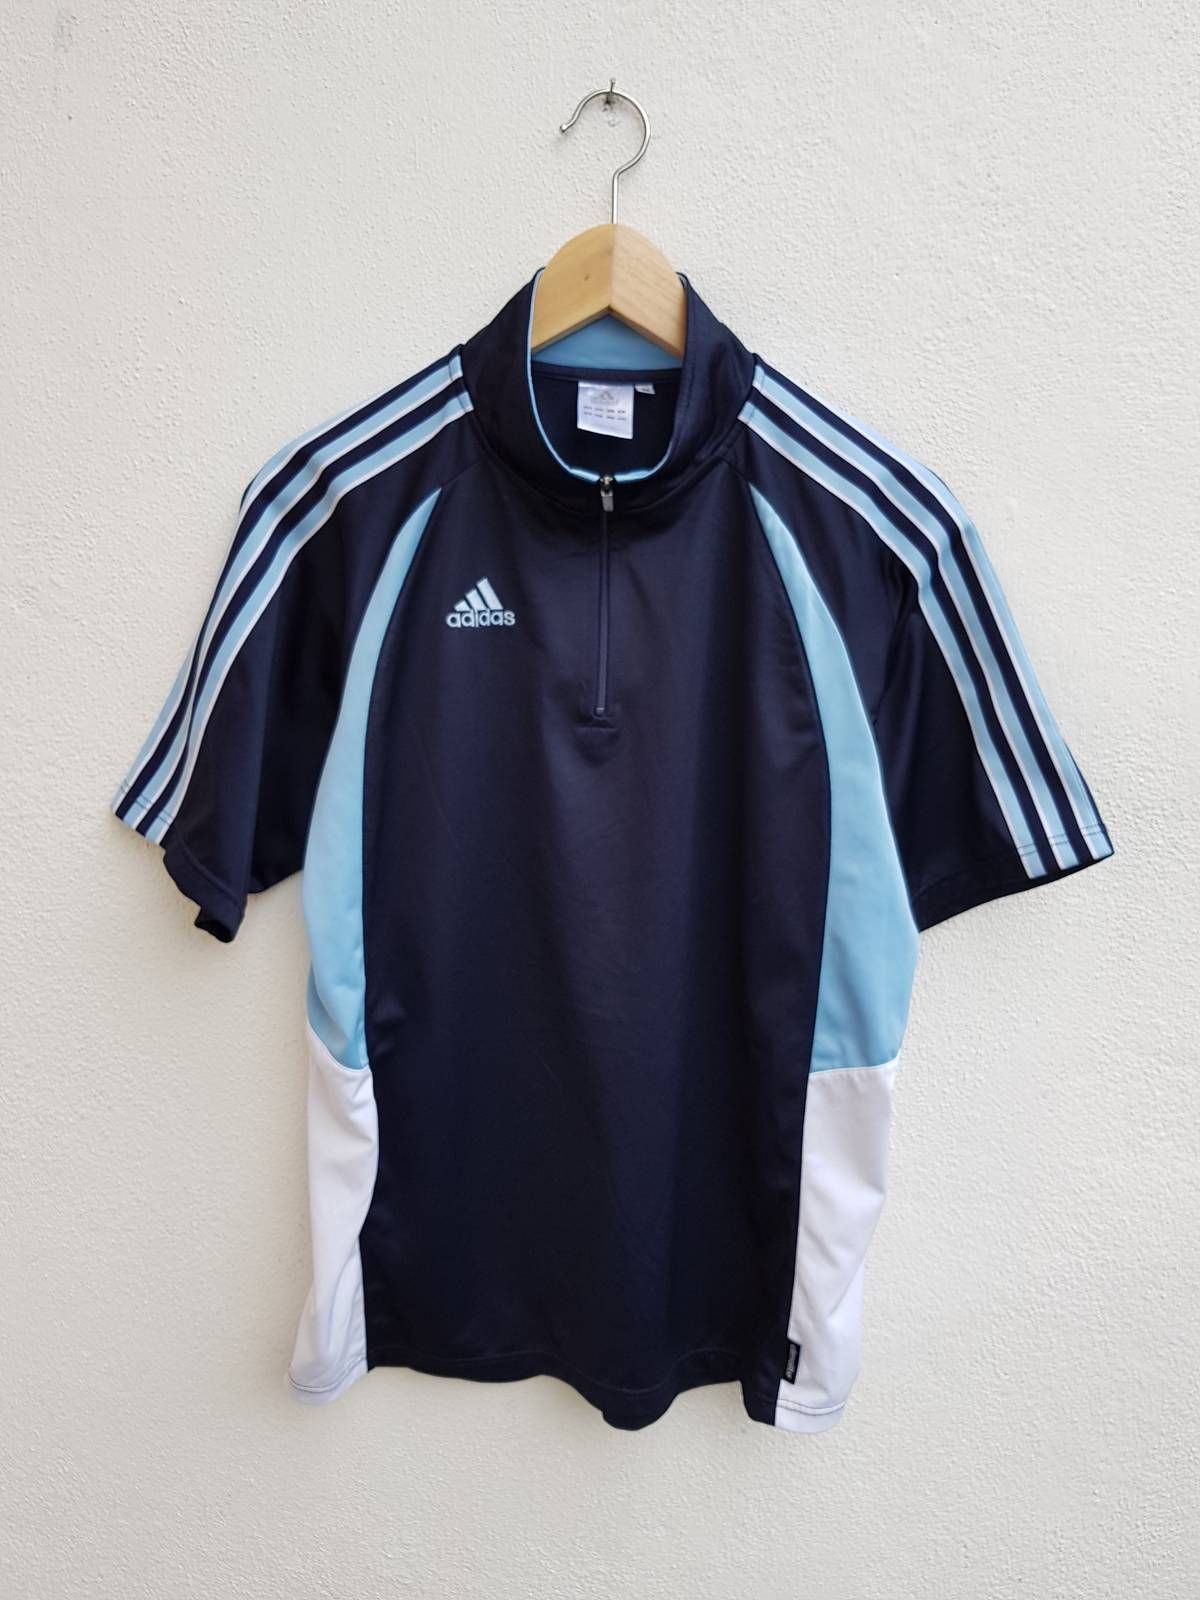 Adidas Vintage 90s Adidas 3 Stripes Sleeve Embroidered Monogram Color Block Zip Polos Jersey Shirt Size M Vintage Adidas Striped Sleeve Adidas Tops [ 1600 x 1200 Pixel ]